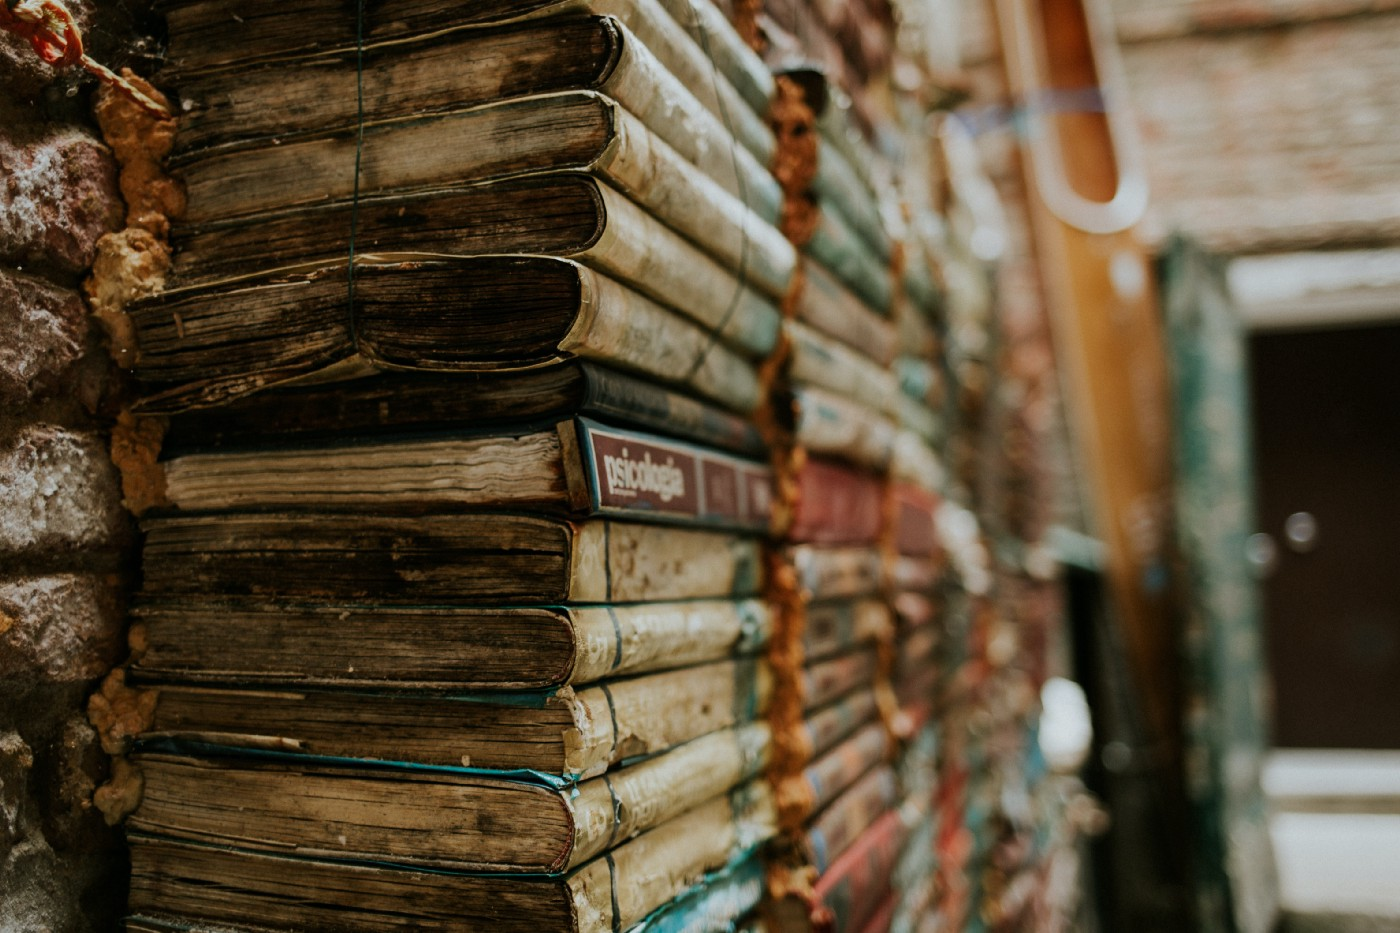 Pile of old books in a dusty room